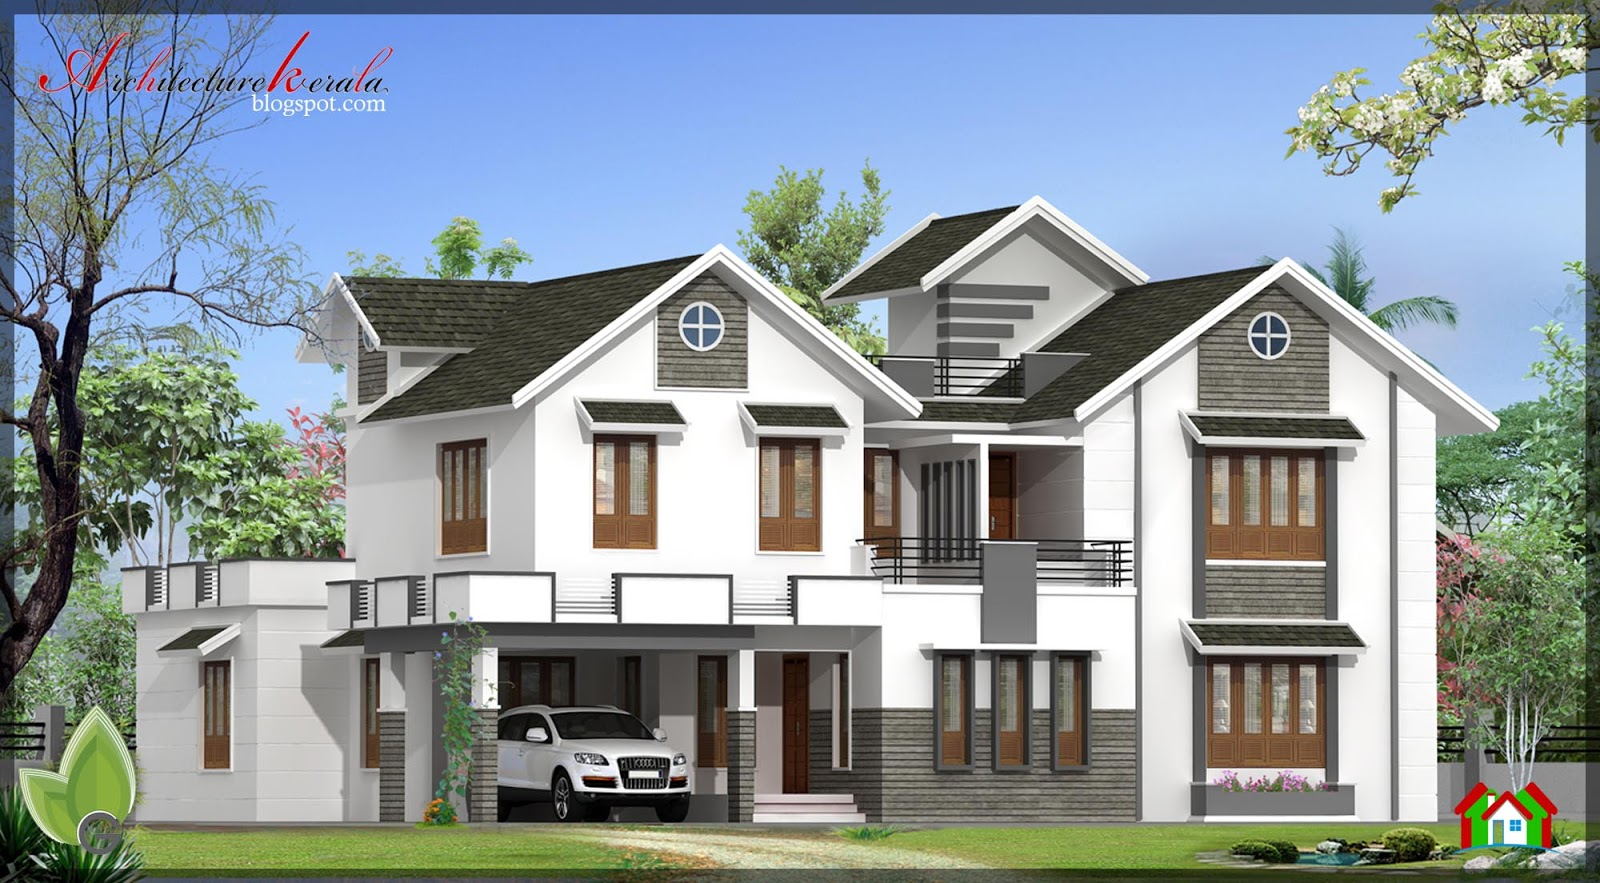 3000 sq ft house elevation architecture kerala for Home designs 3000 sq ft